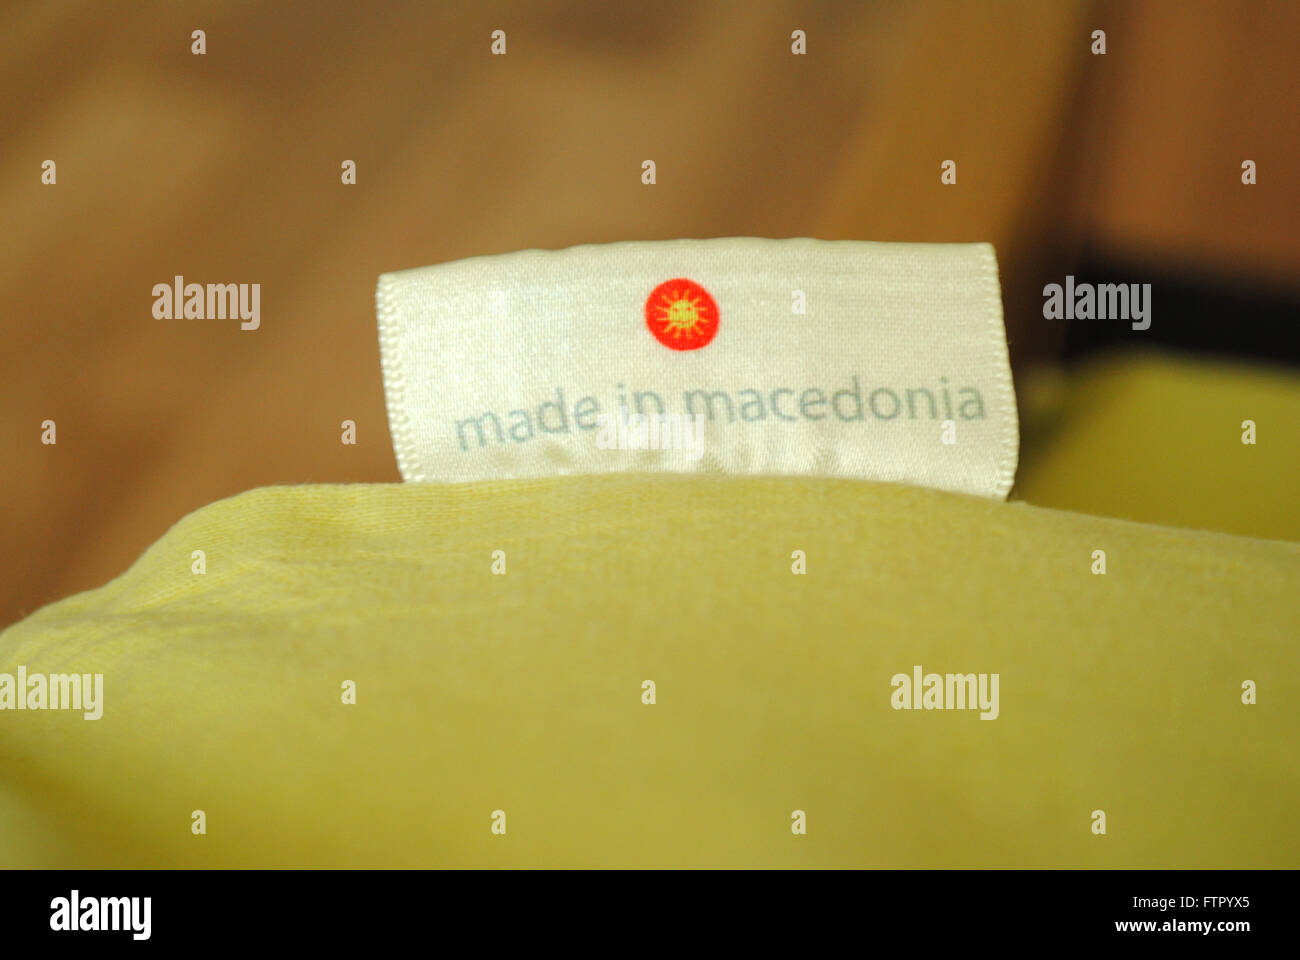 A 'Made in Macedonia' label on locally produced bedlinen. - Stock Image